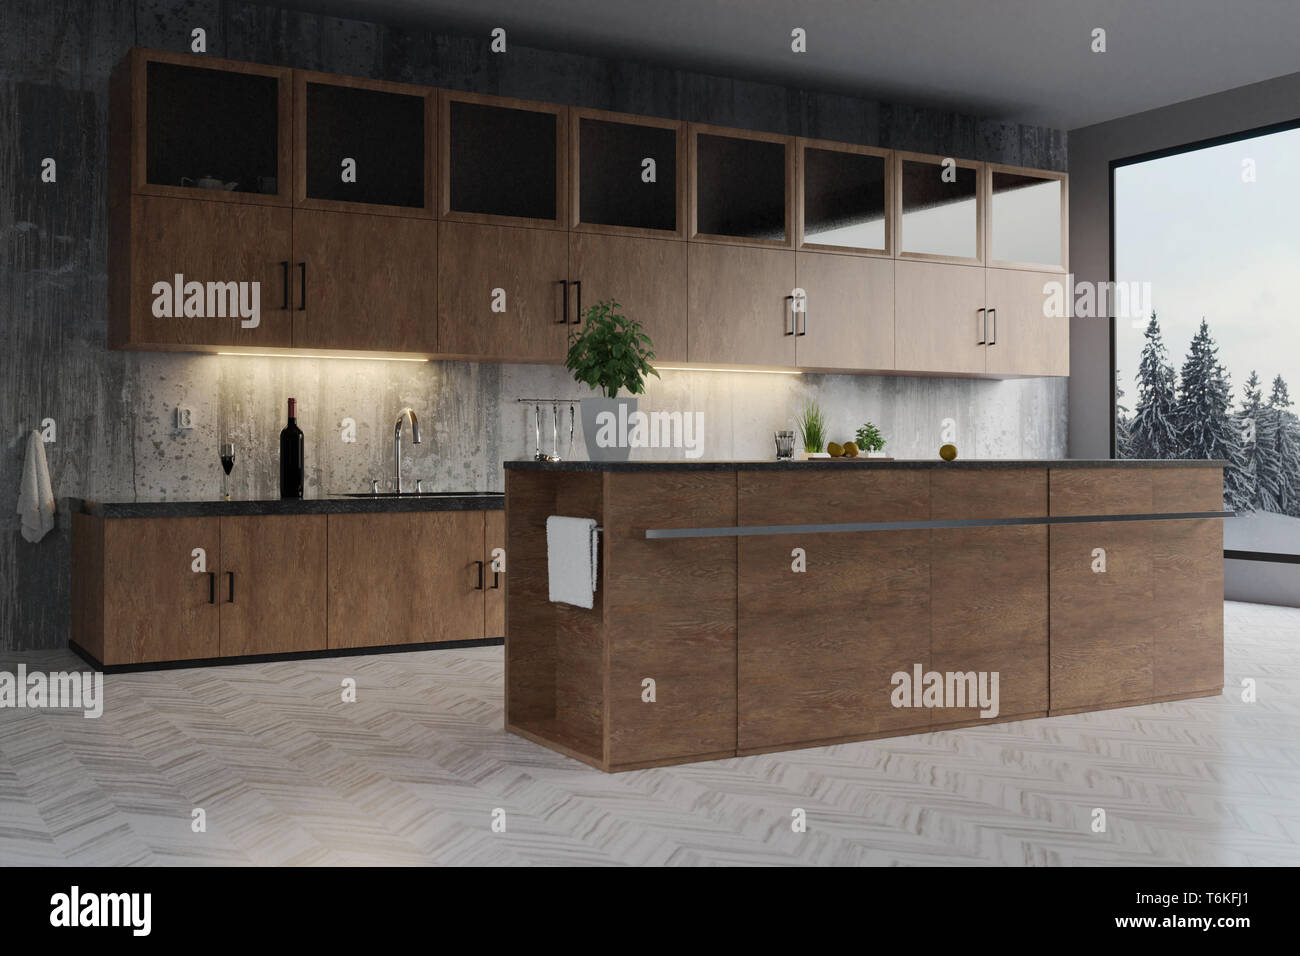 3d Rendering Of Modern Kitchen With Hardwood Cabinets And Concrete Wall Stock Photo Alamy,Colours That Go With Purple In A Bedroom